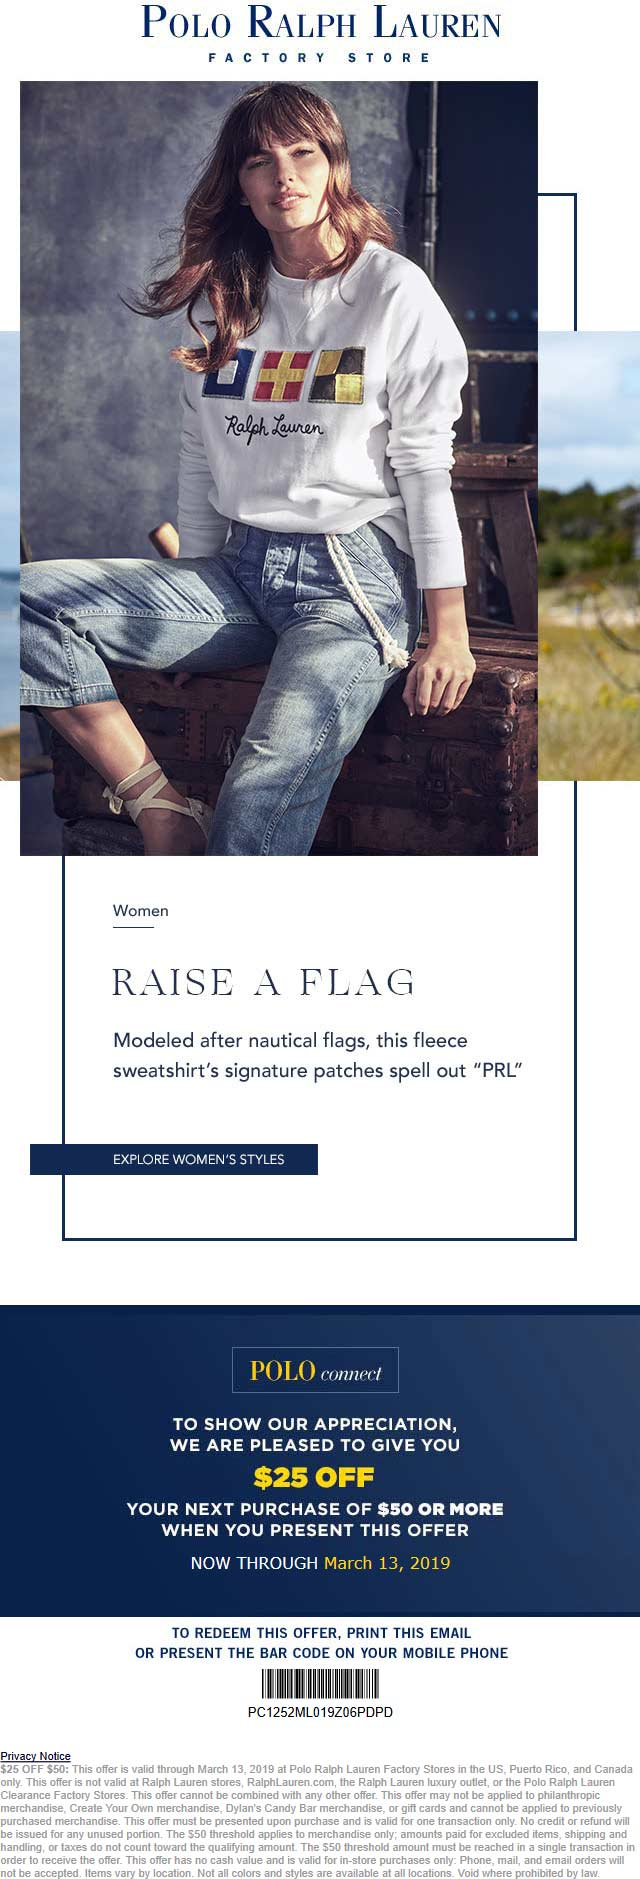 Polo Ralph Lauren Factory coupons & promo code for [October 2020]